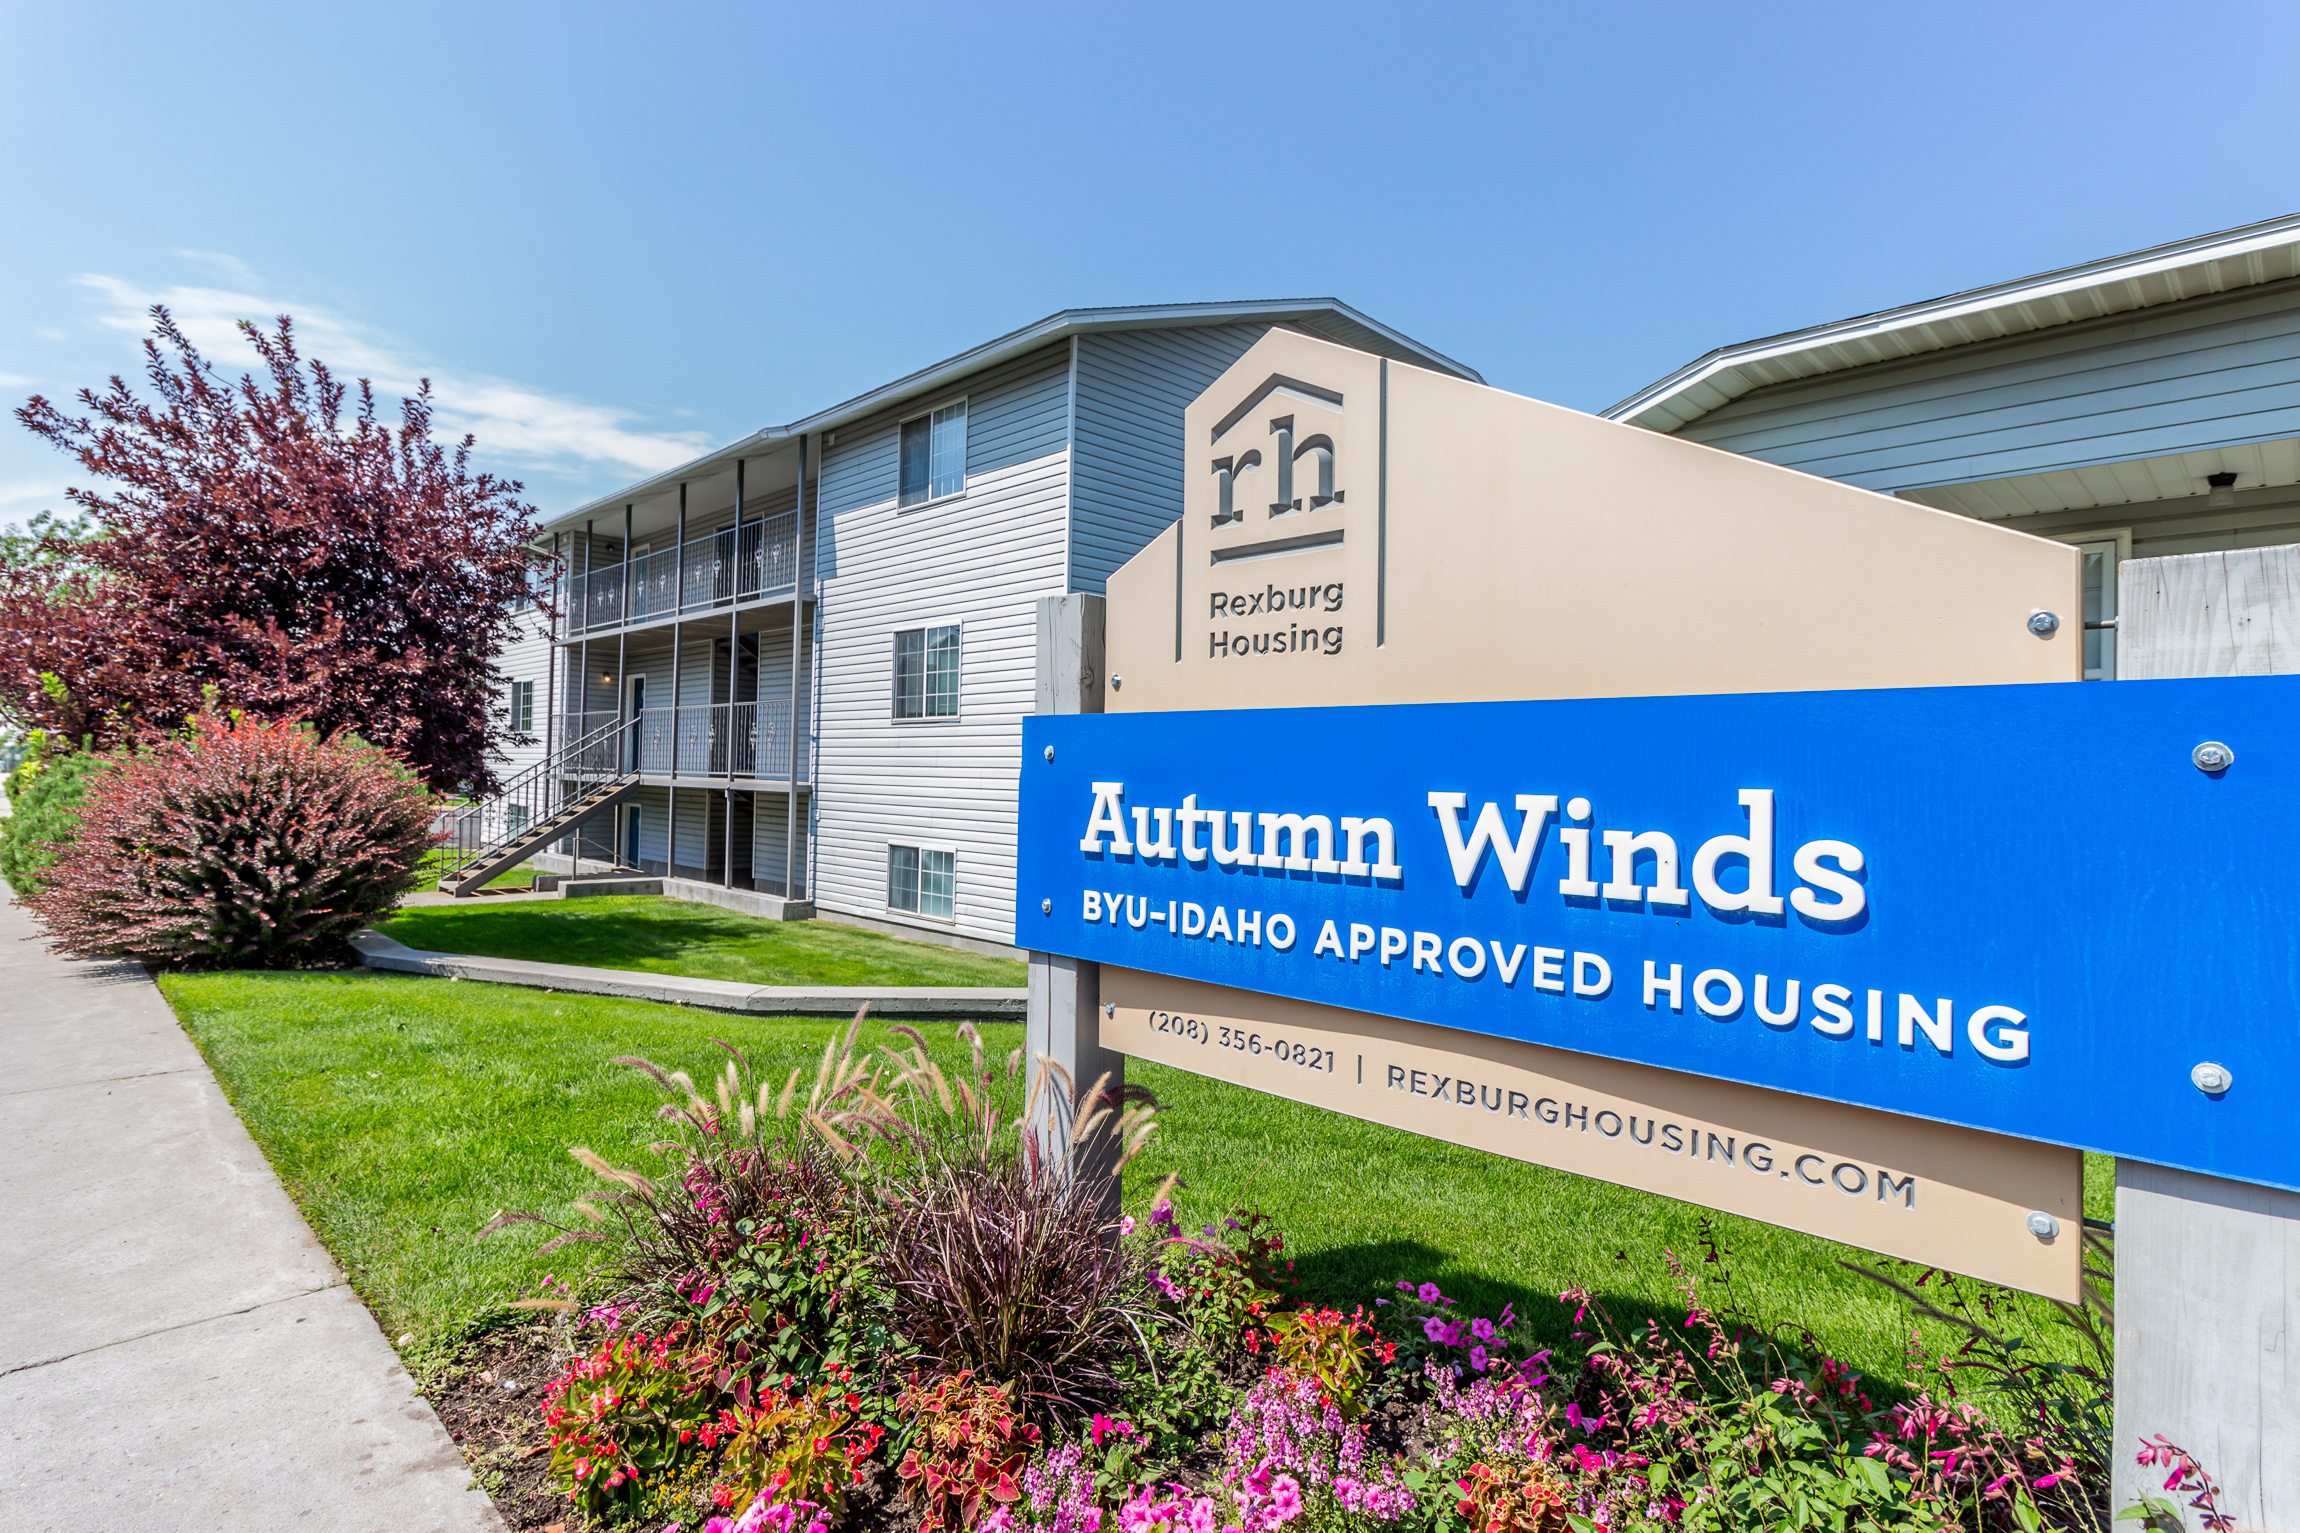 Rexburg Housing Autumn Winds